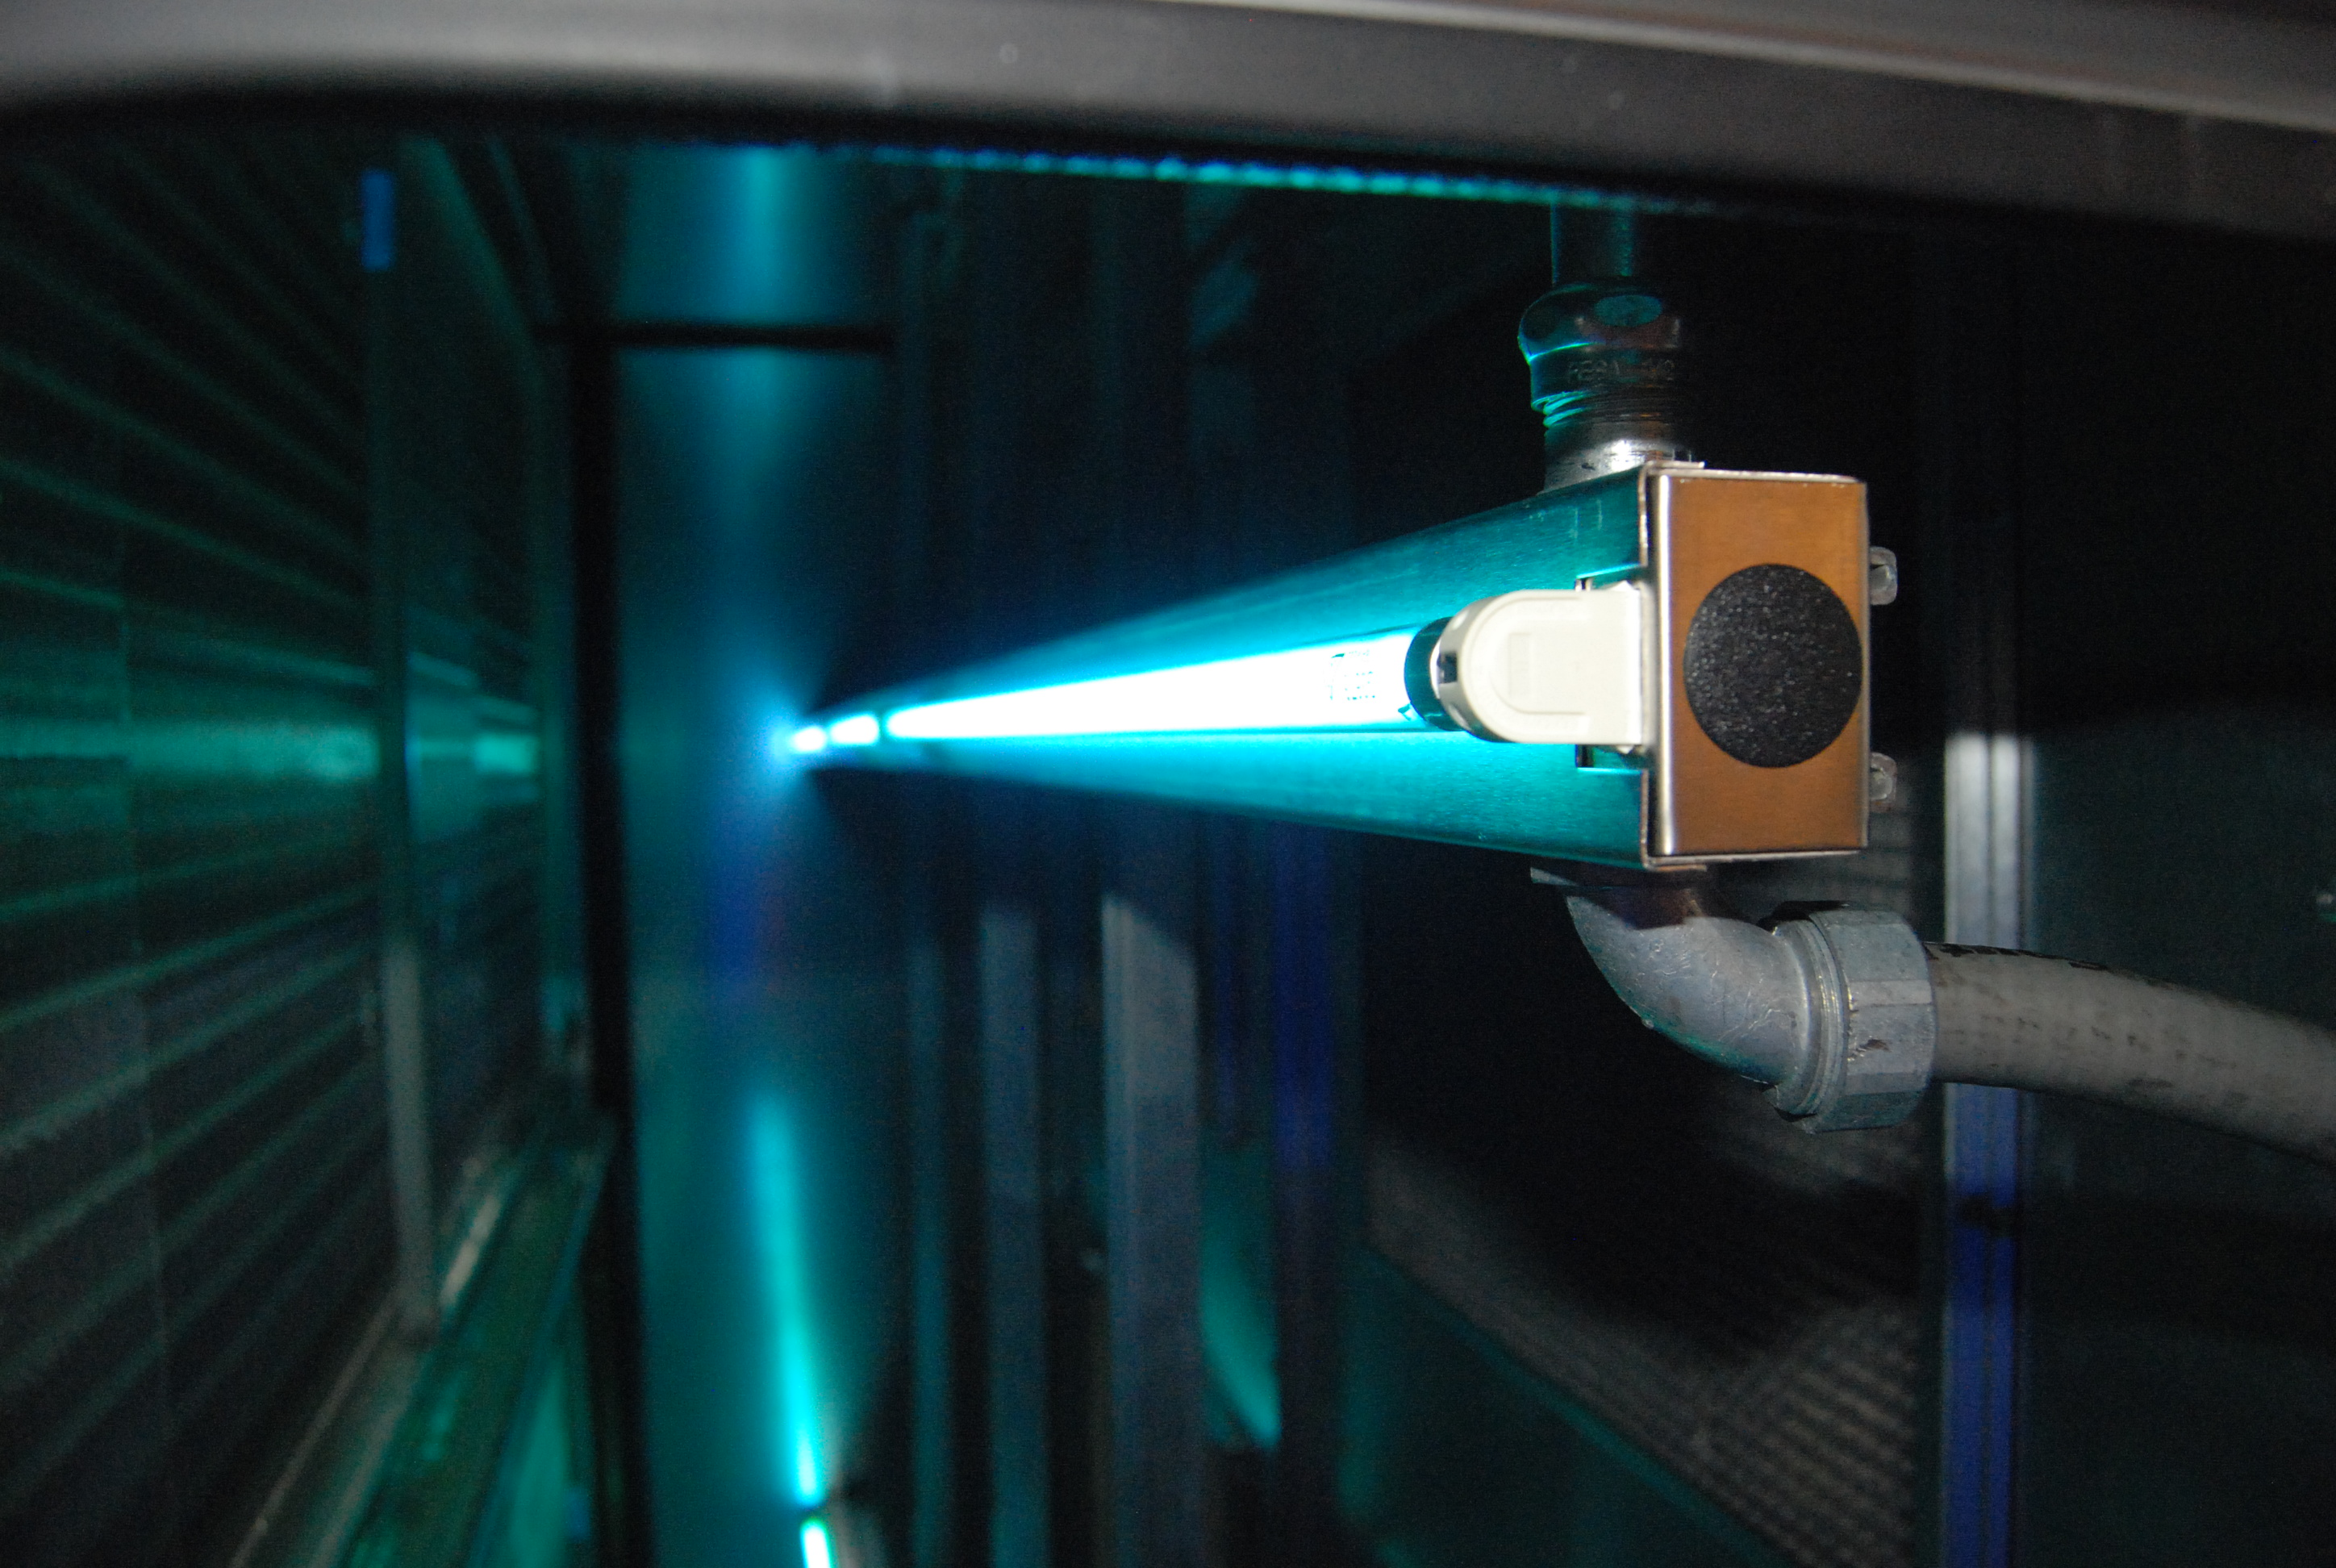 A glowing blue UV-C light tool